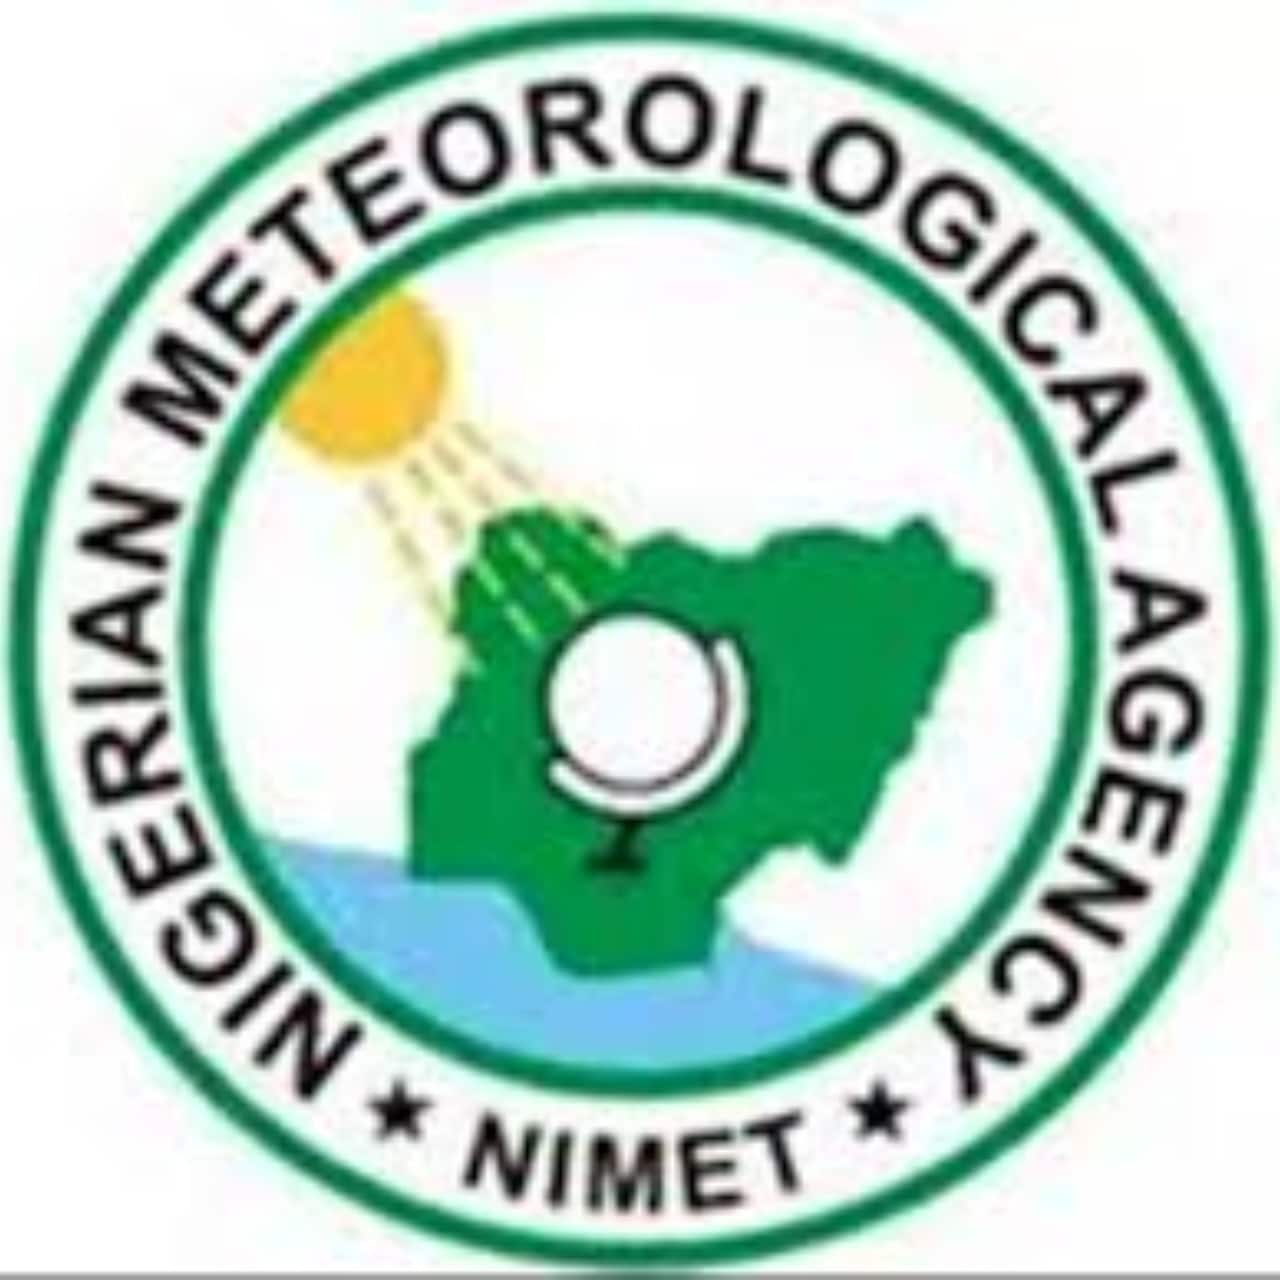 Nigerian Meteorological Agency (nimet) Has Predicted Moisture Laden Winds To Extend Up To The Northwestern Region From Tuesday To Thursday. Nimet's Weather Outlook Released On Monday In Abu